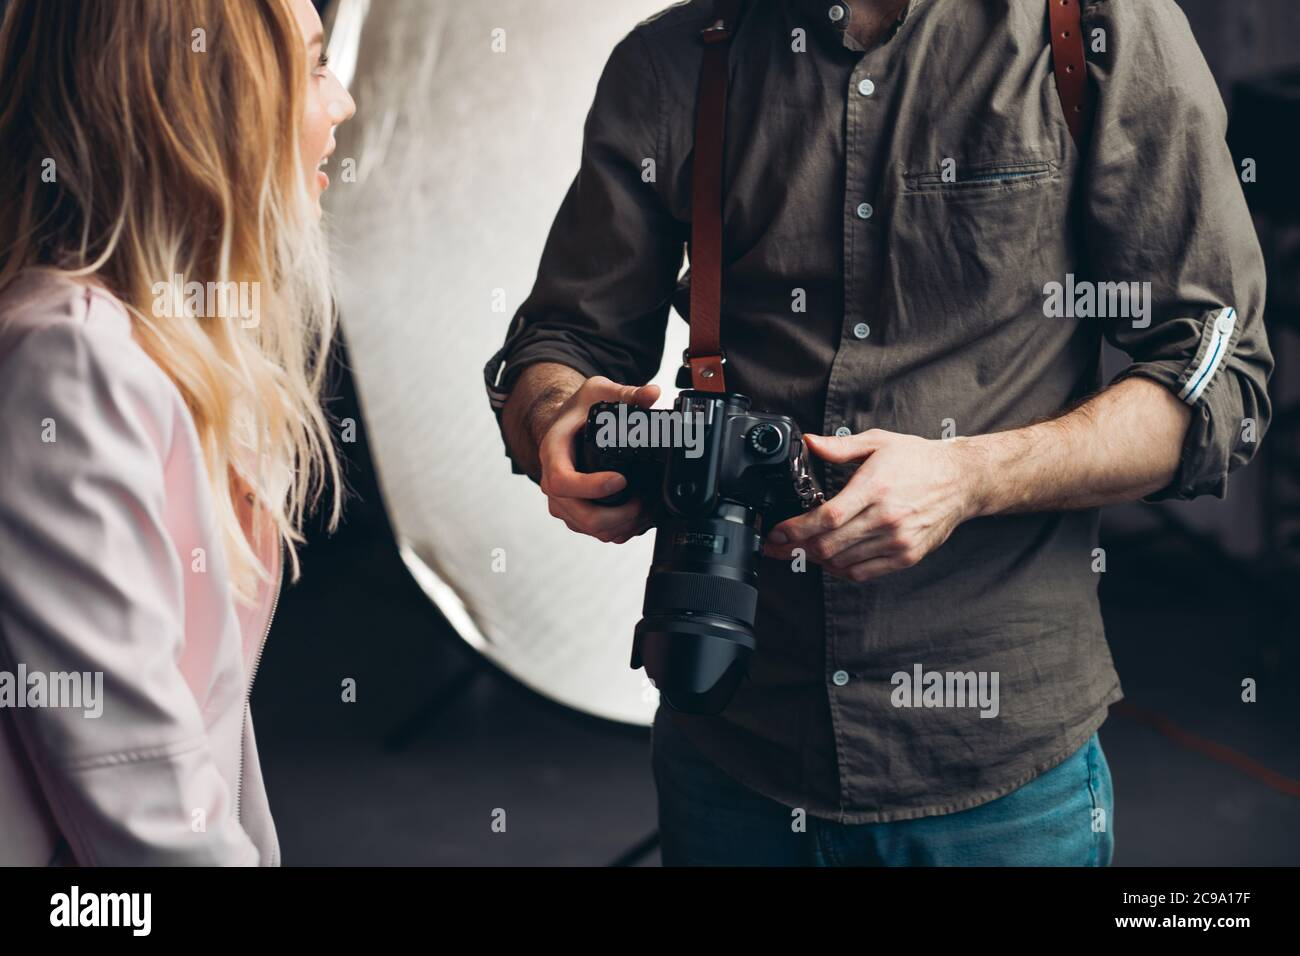 man looking for photos in the camera while having a chat with a blonde girl , close up cropped photo Stock Photo